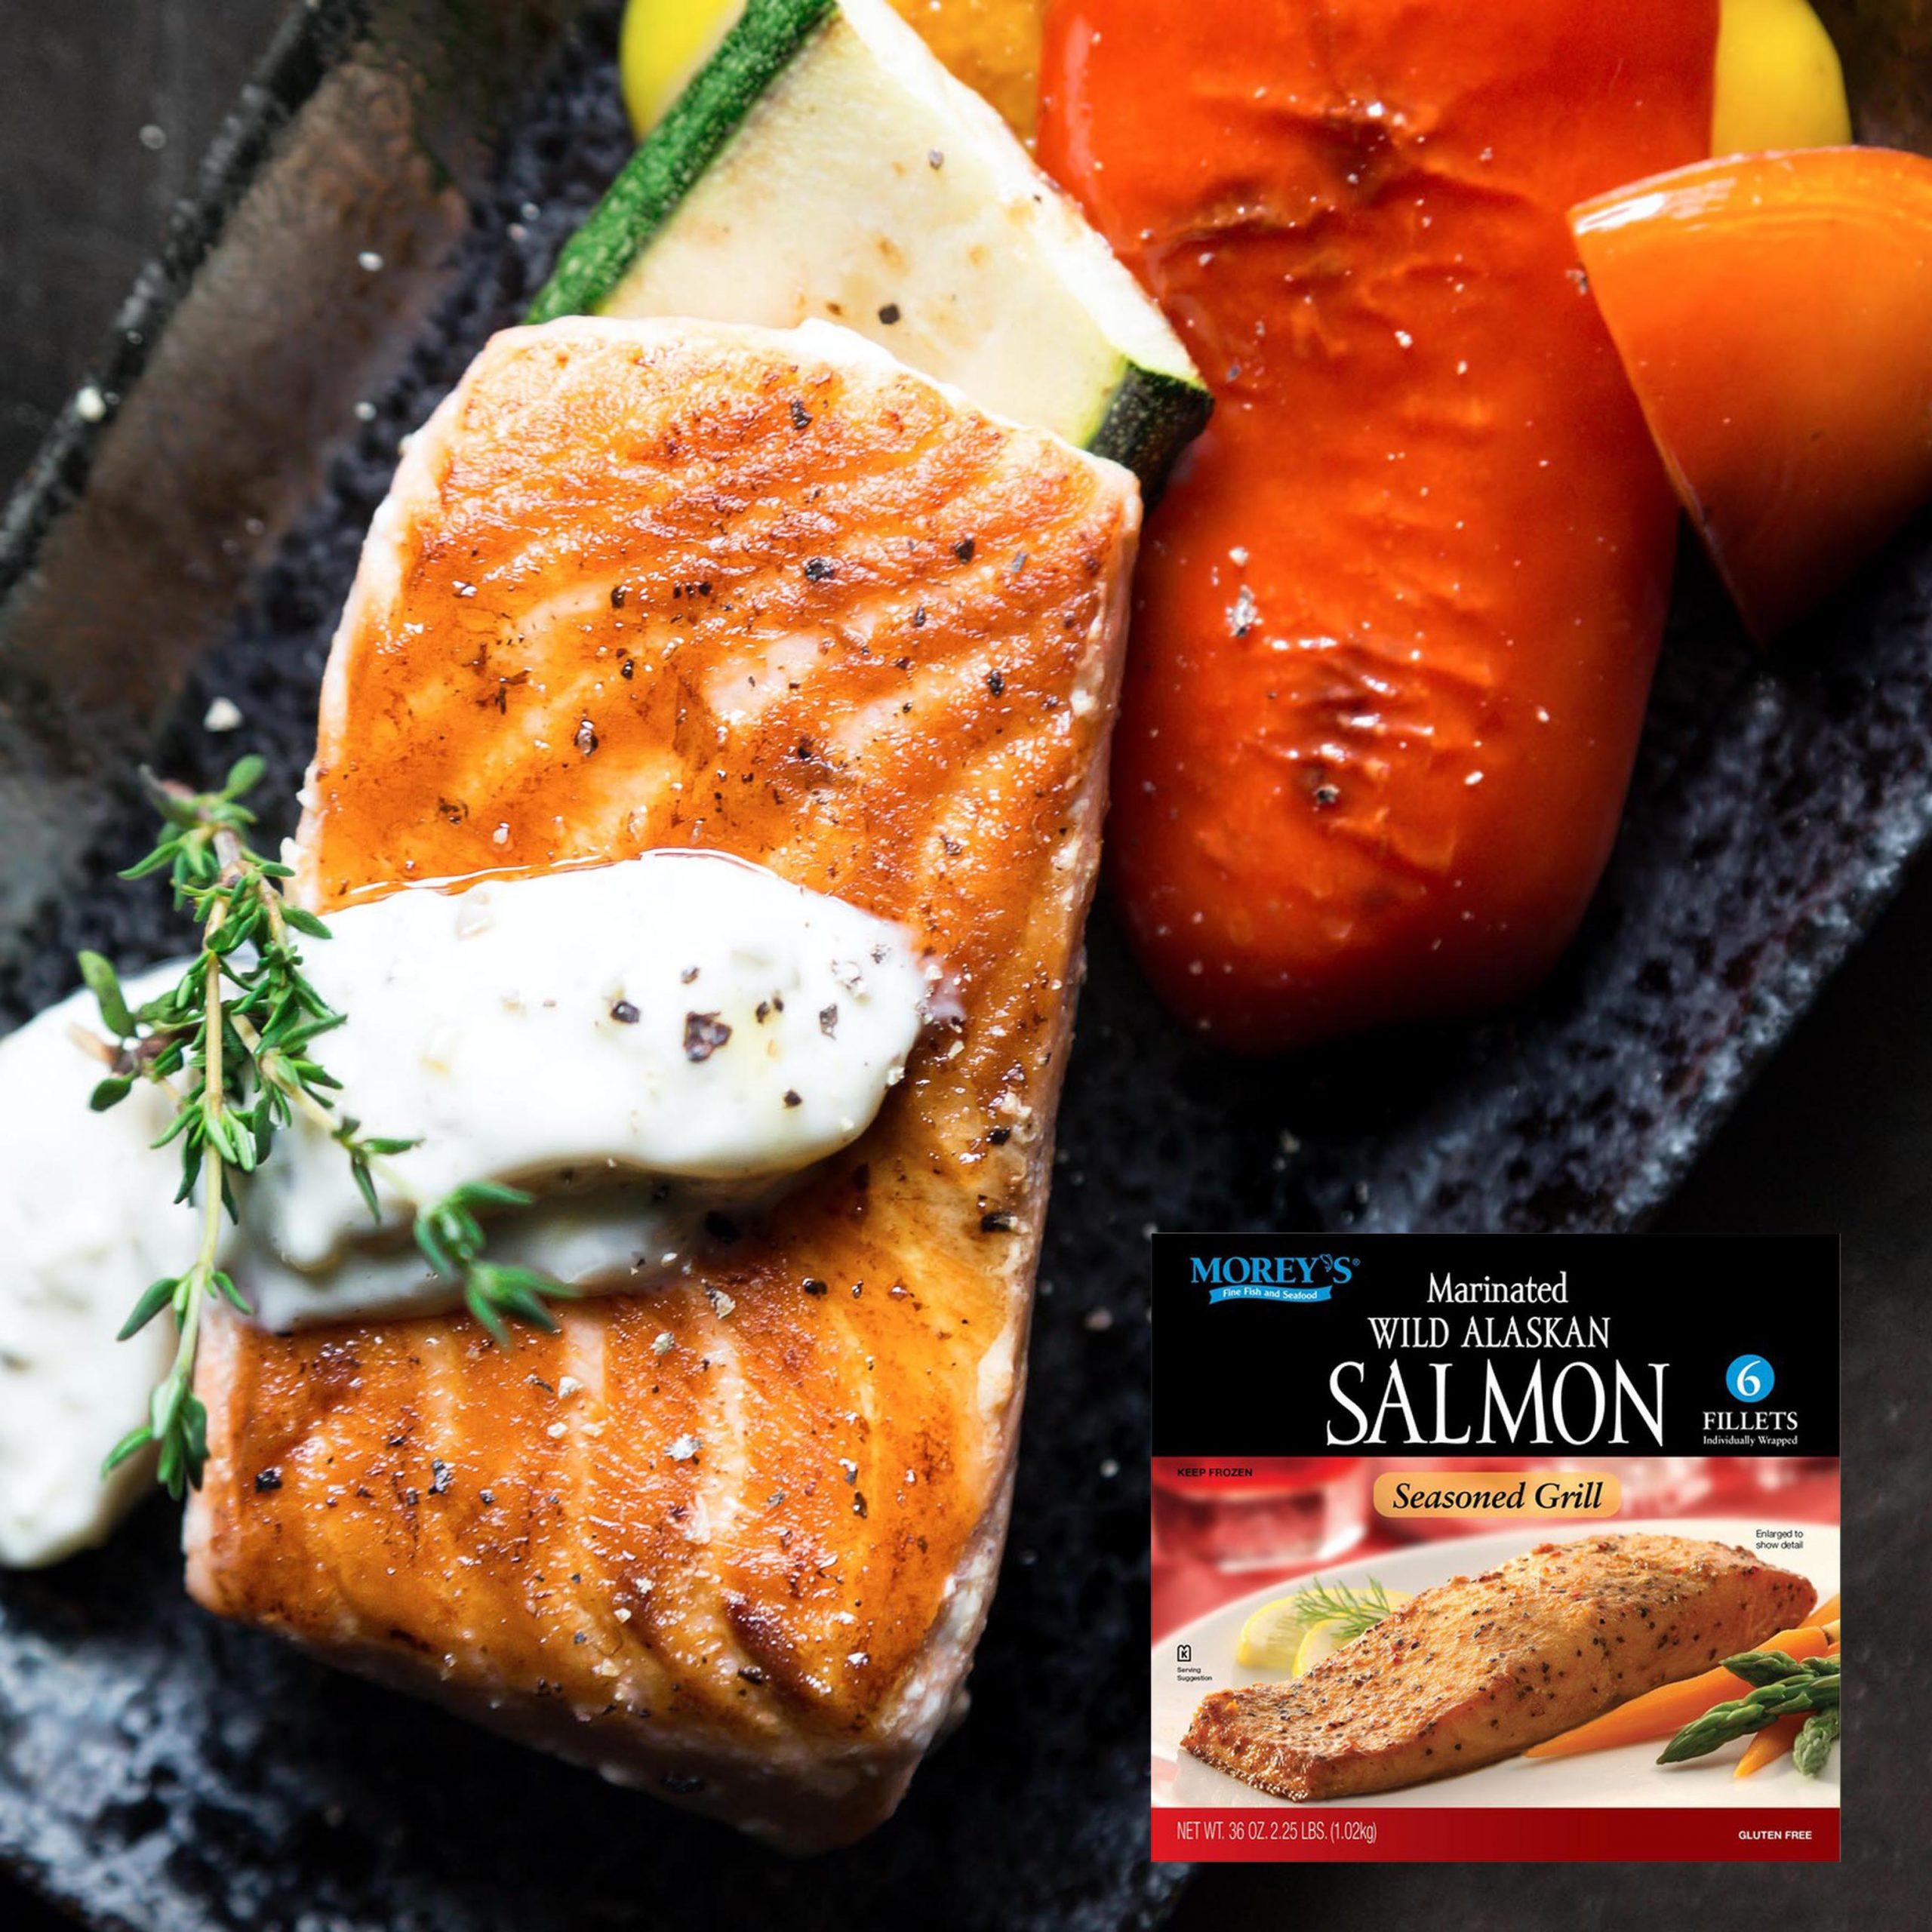 Morey's Wild Alaskan Salmon Feature